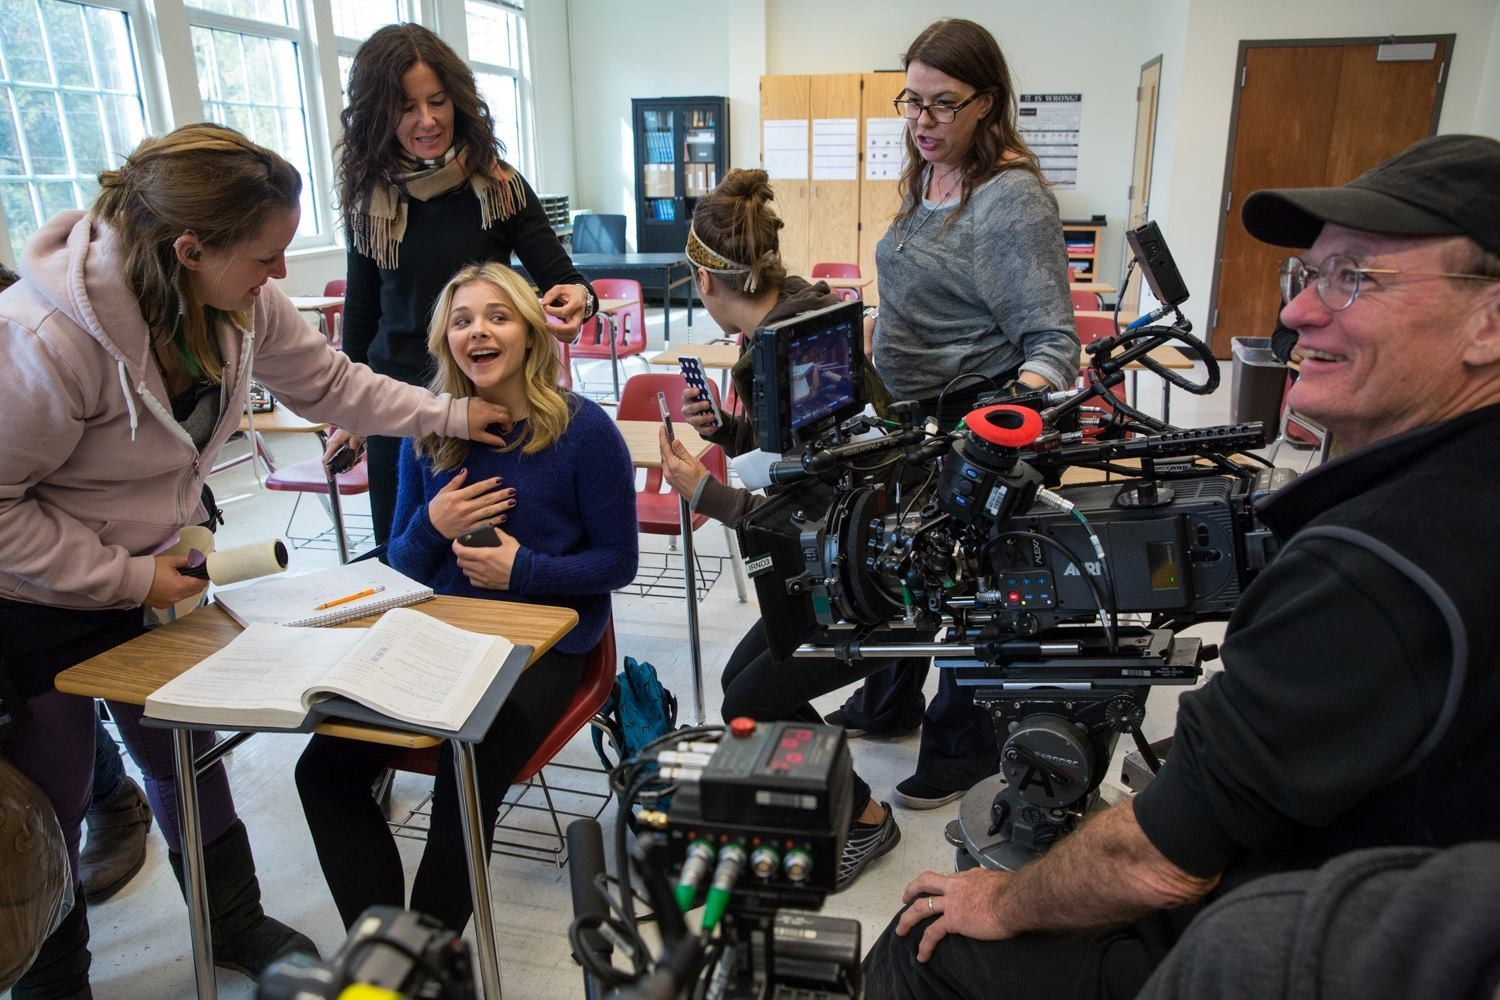 The 5th Wave Behind the Scenes Photos & Tech Specs